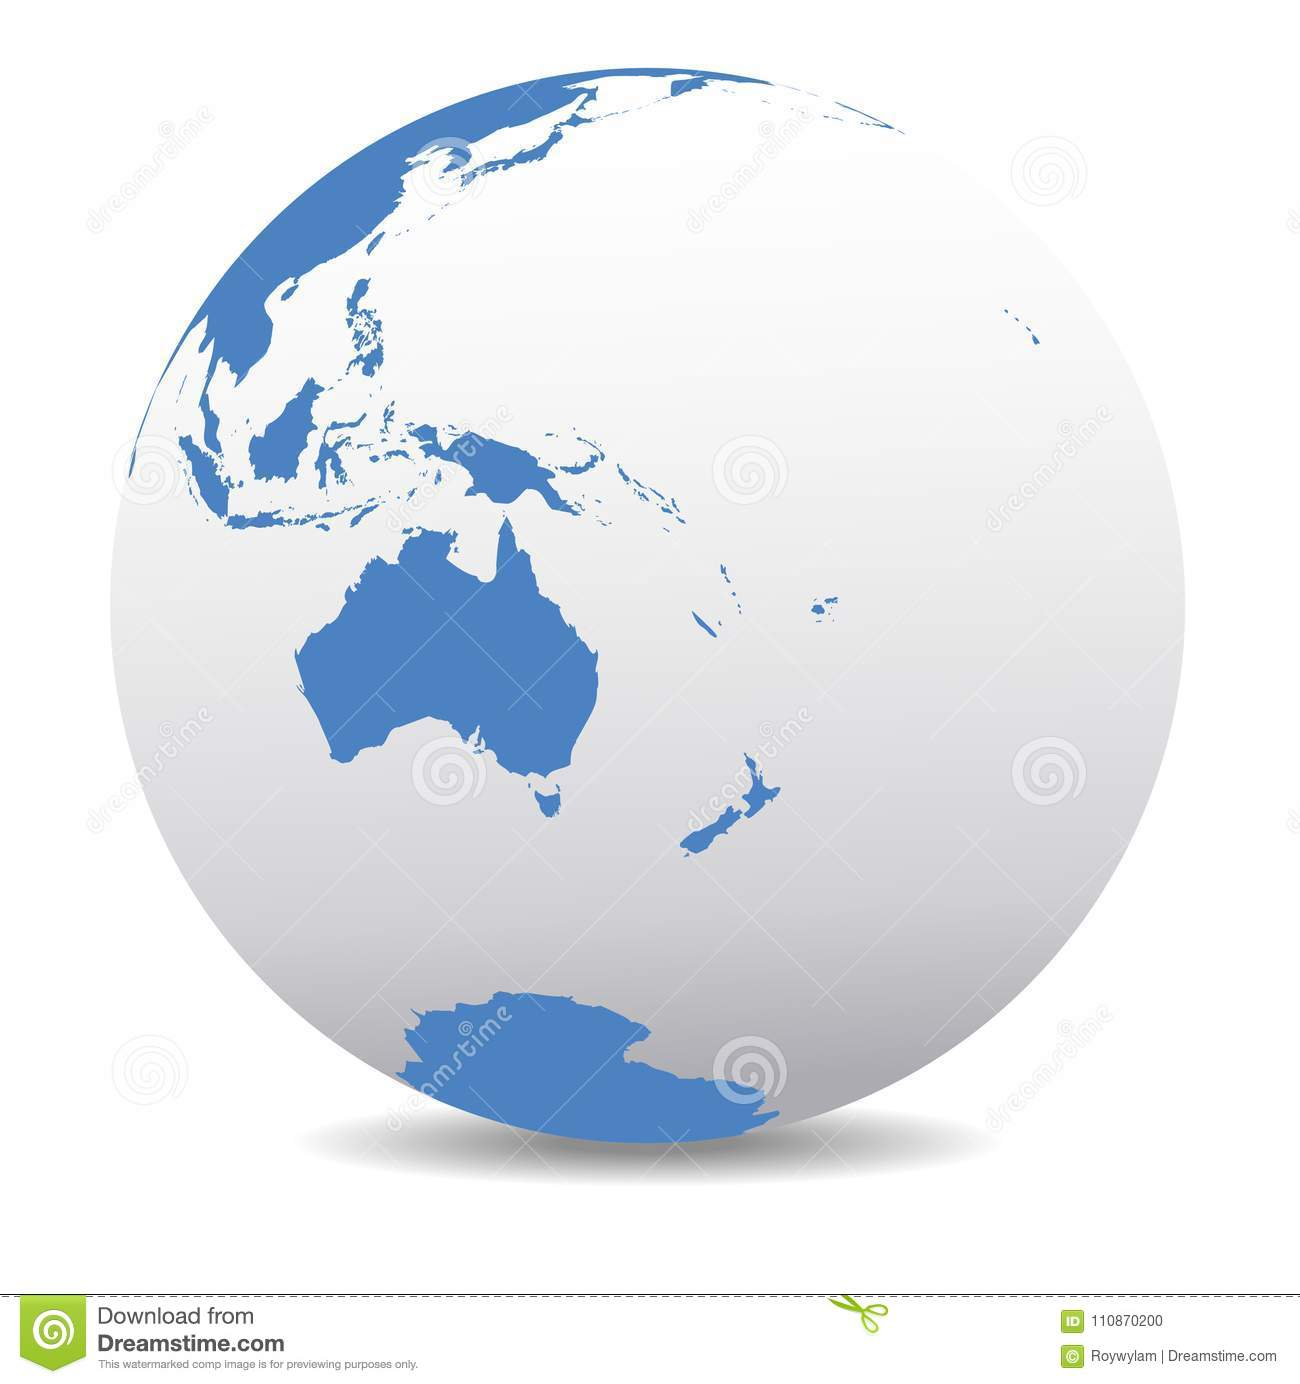 New Zealand Map On World.Australia And New Zealand Earth Planet Global World Stock